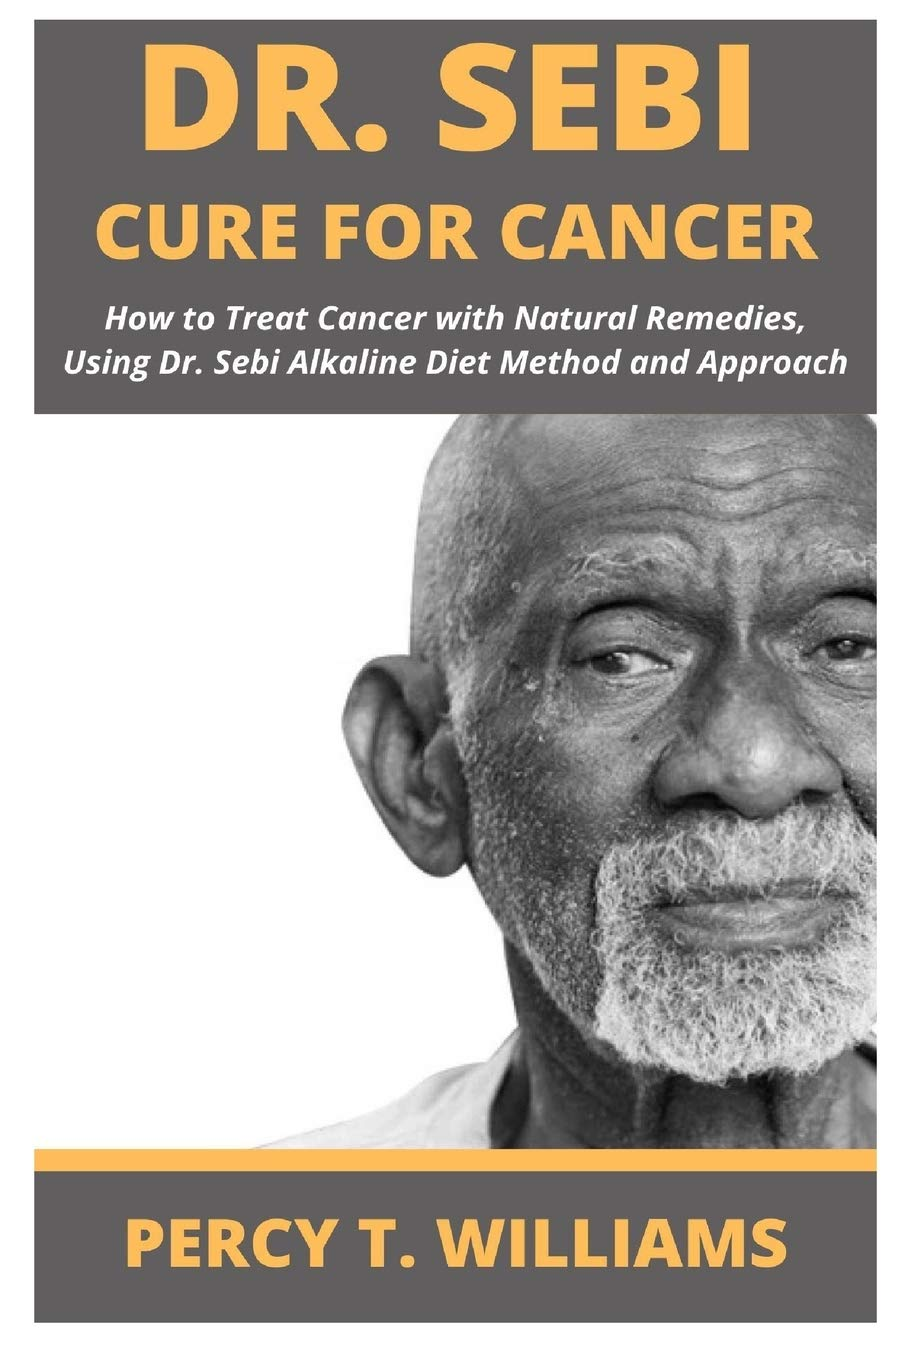 Dr Sebi Quotes  - dr sebi quotes  - Dr. Sebi Quotes about Life and Health in 2021